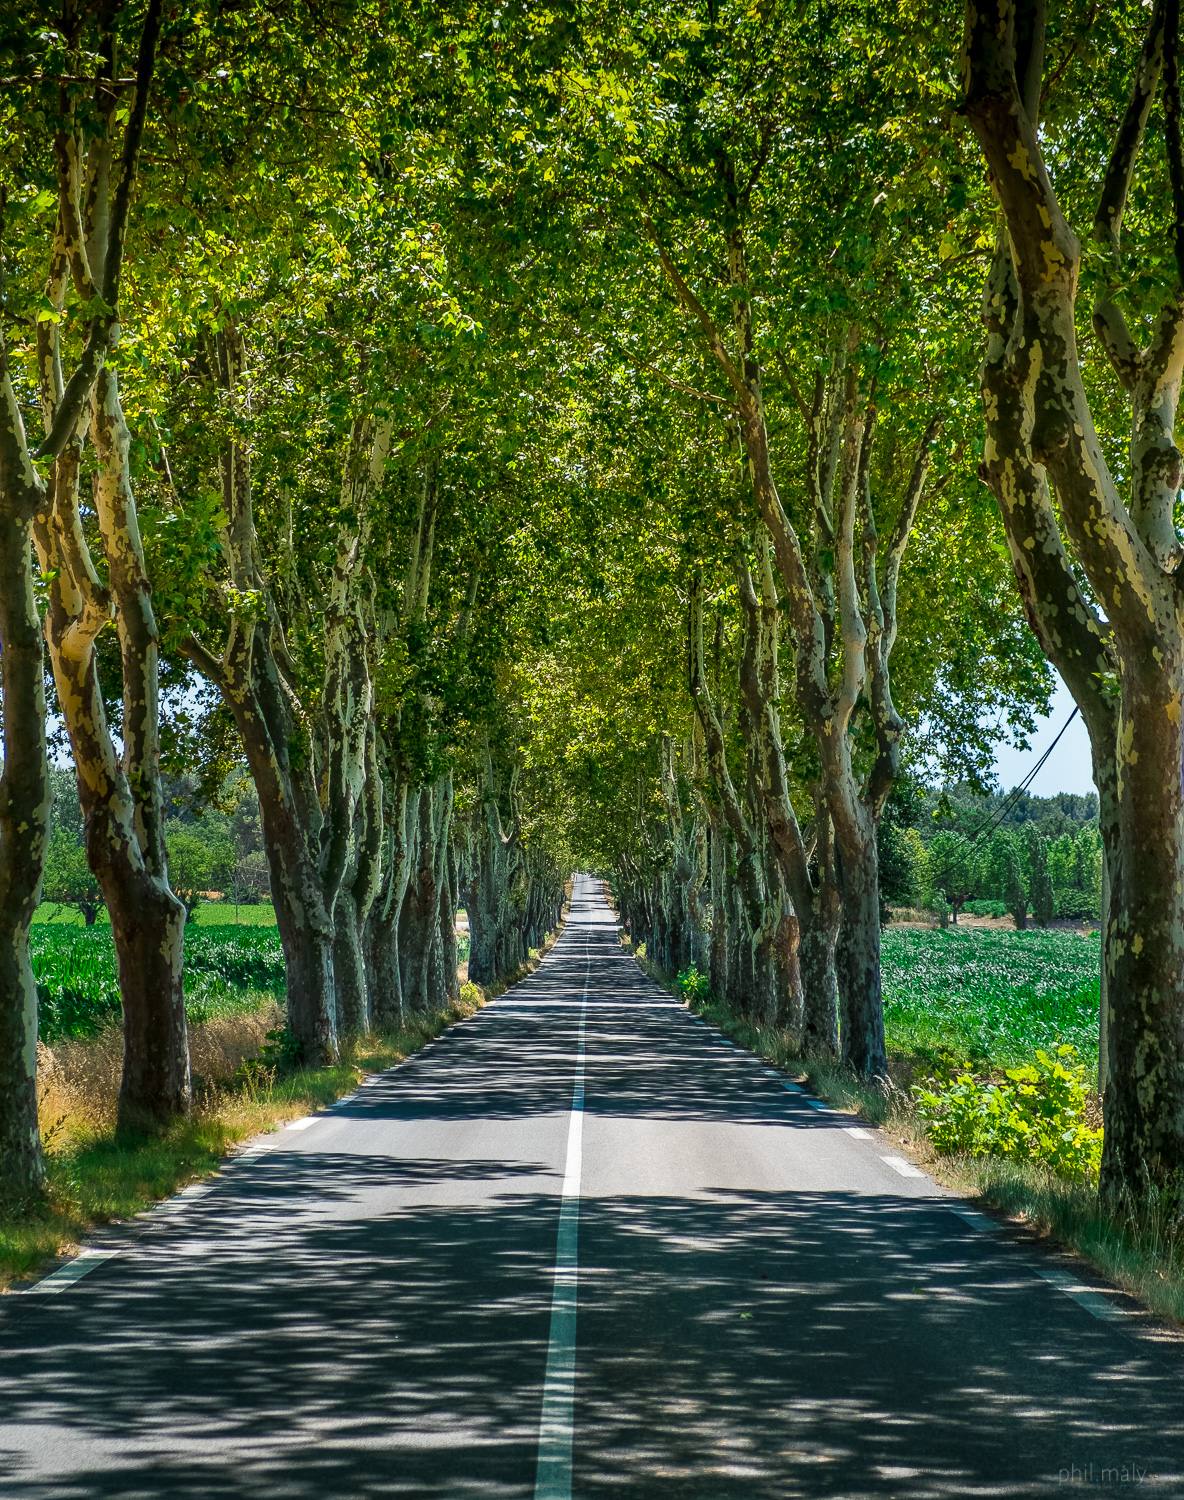 Road under a long alley of trees in Provence